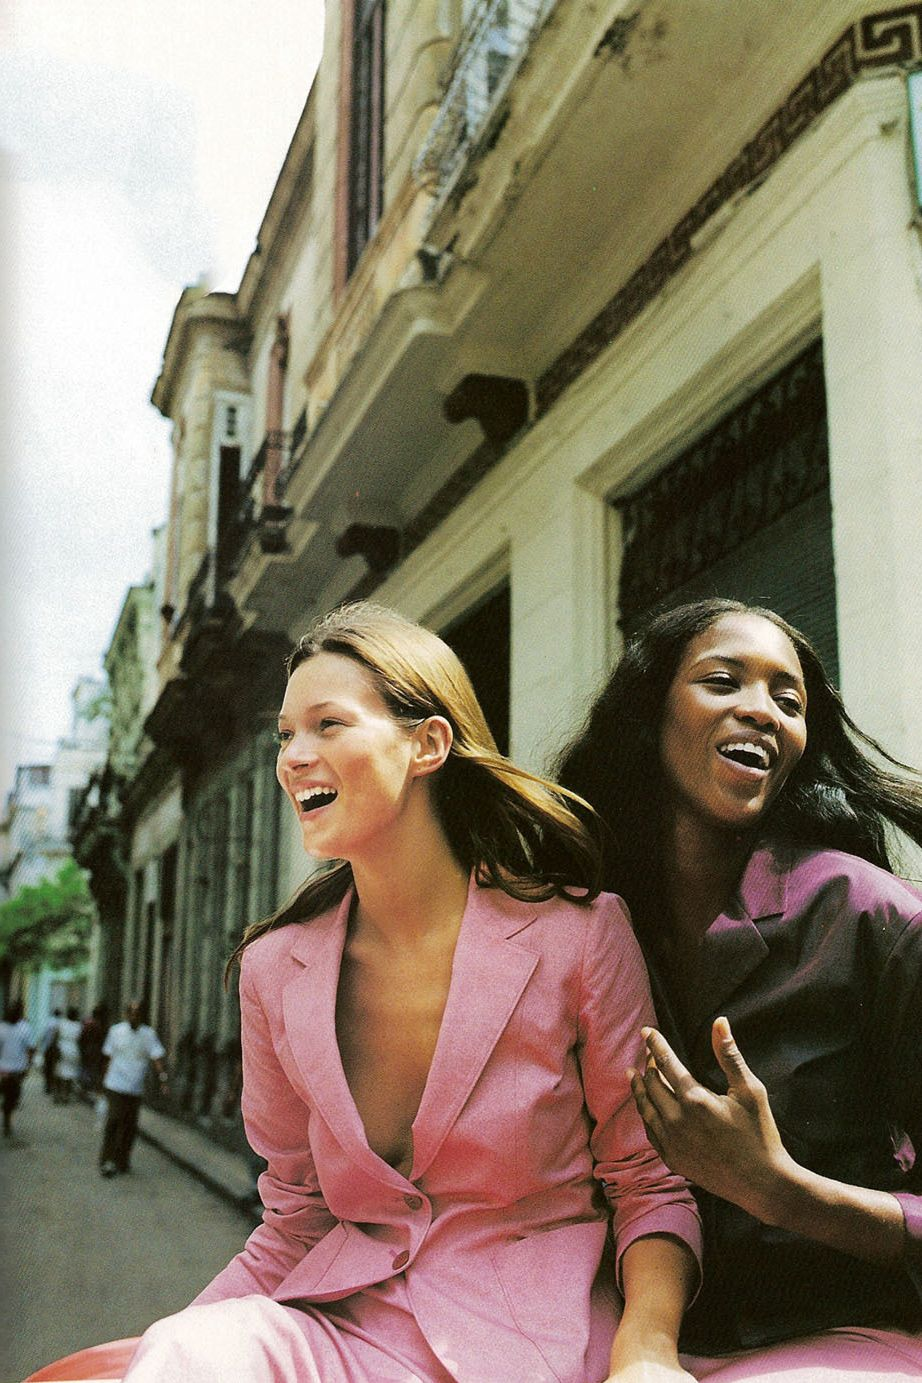 "<p>Kate Moss and Naomi Campbell wore the hue head-to-toe when they were shot by&nbsp&#x3B;Patrick Demarchelier<span class=""redactor-invisible-space""> for the May 1998 issue of Harper's BAZAAR in Cuba.&nbsp&#x3B;</span></p><p><span class=""redactor-invisible-space""></span></p>"